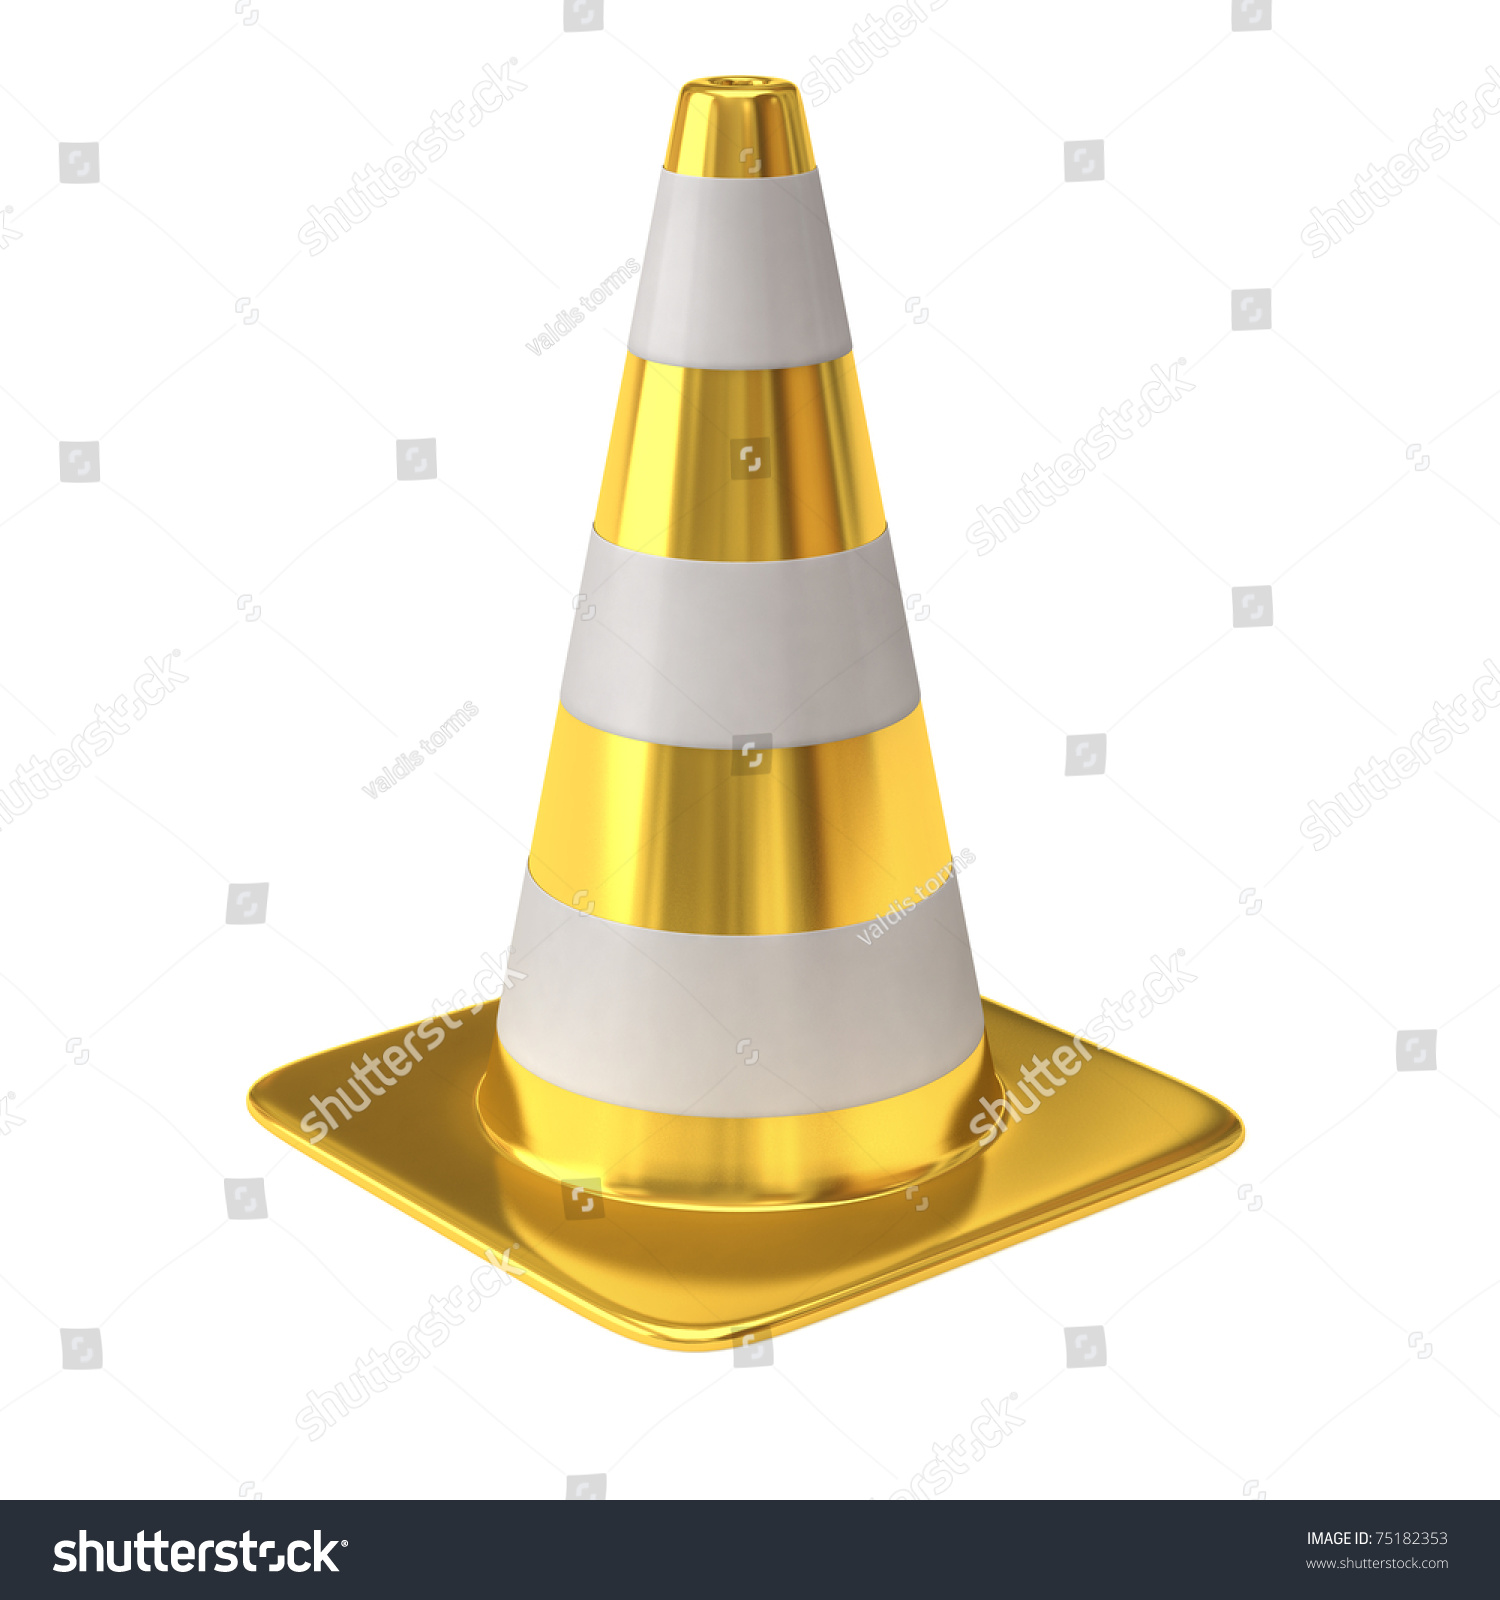 stock-photo--golden-traffic-cone-7518235